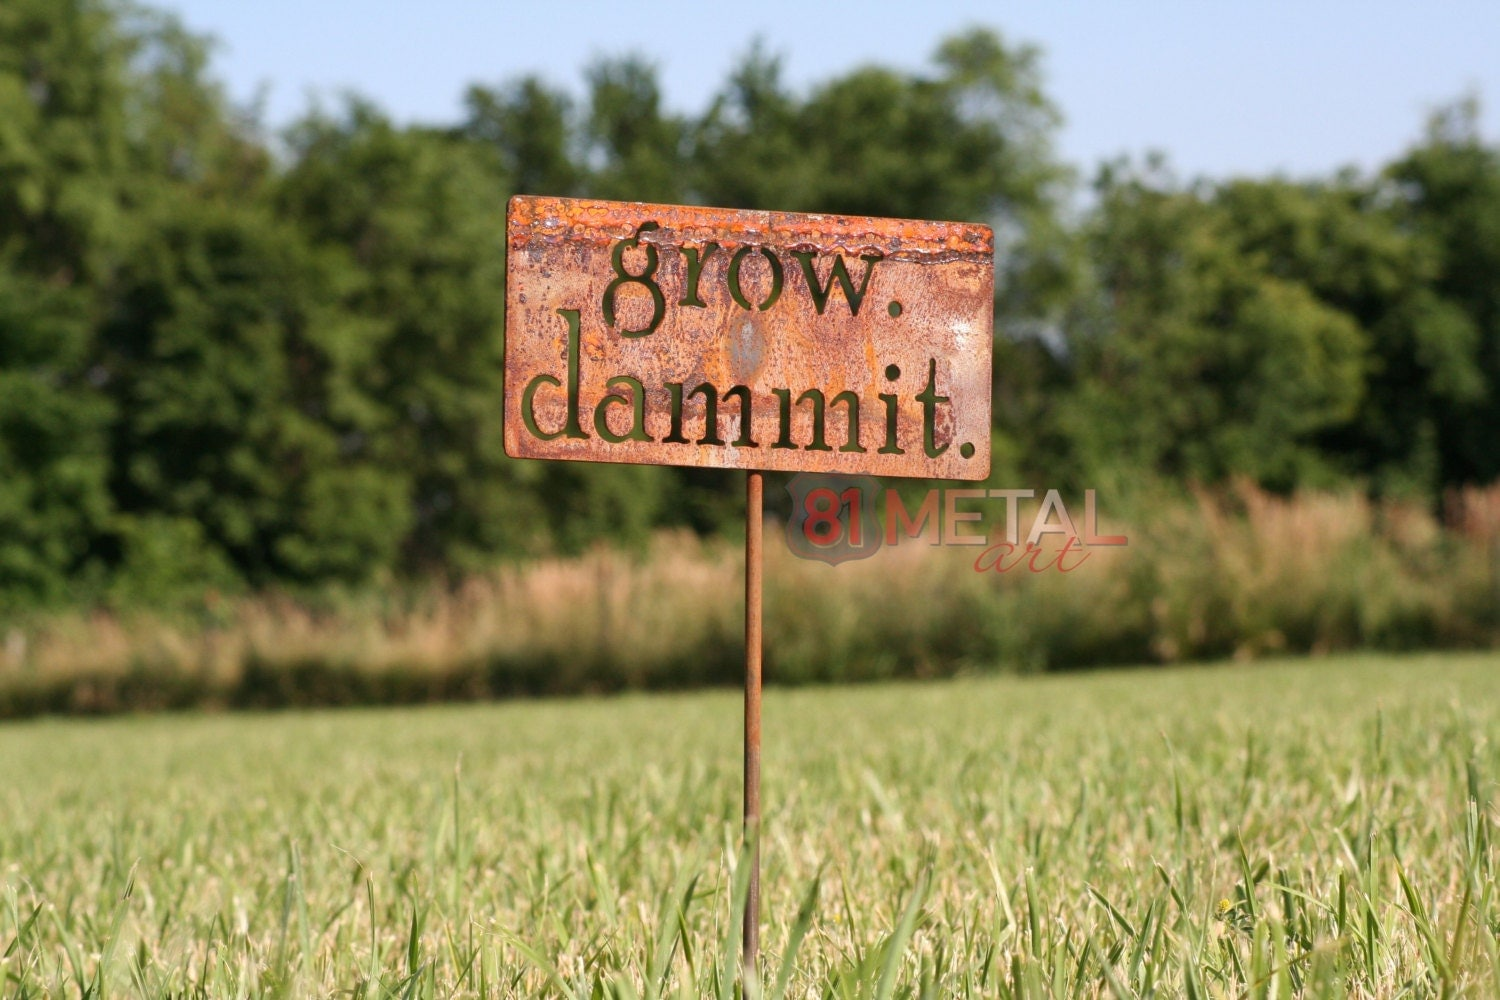 grow. dammit. metal garden stake, Garden Marker, Funny Garden Sign, Garden Humor, Funny Yard Sign, Gardener Gift Ideas, Rusty Garden Decor